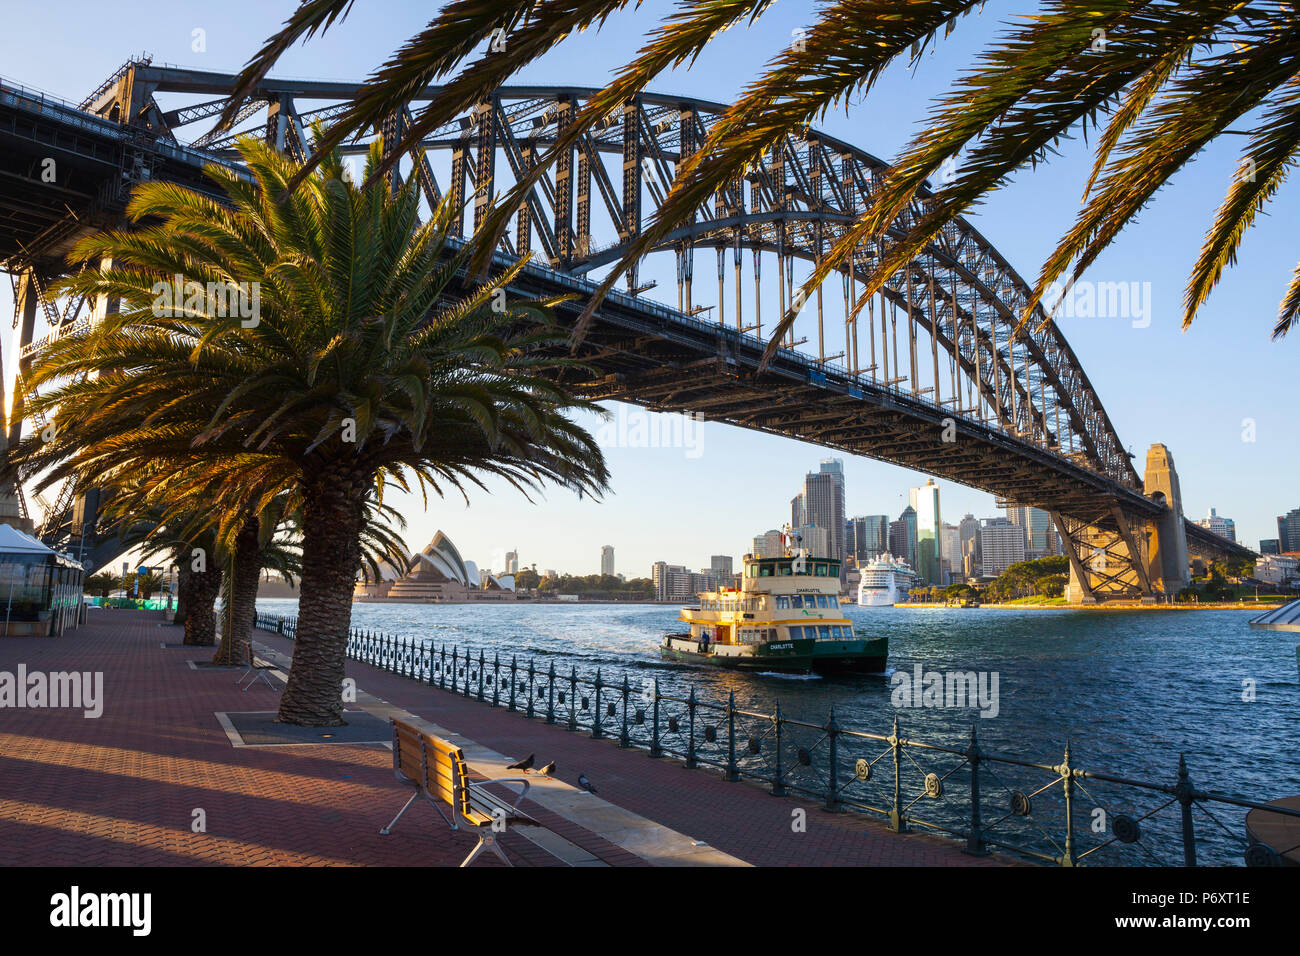 Le Harbour Bridge, Darling Harbour, Sydney, New South Wales, Australia Photo Stock